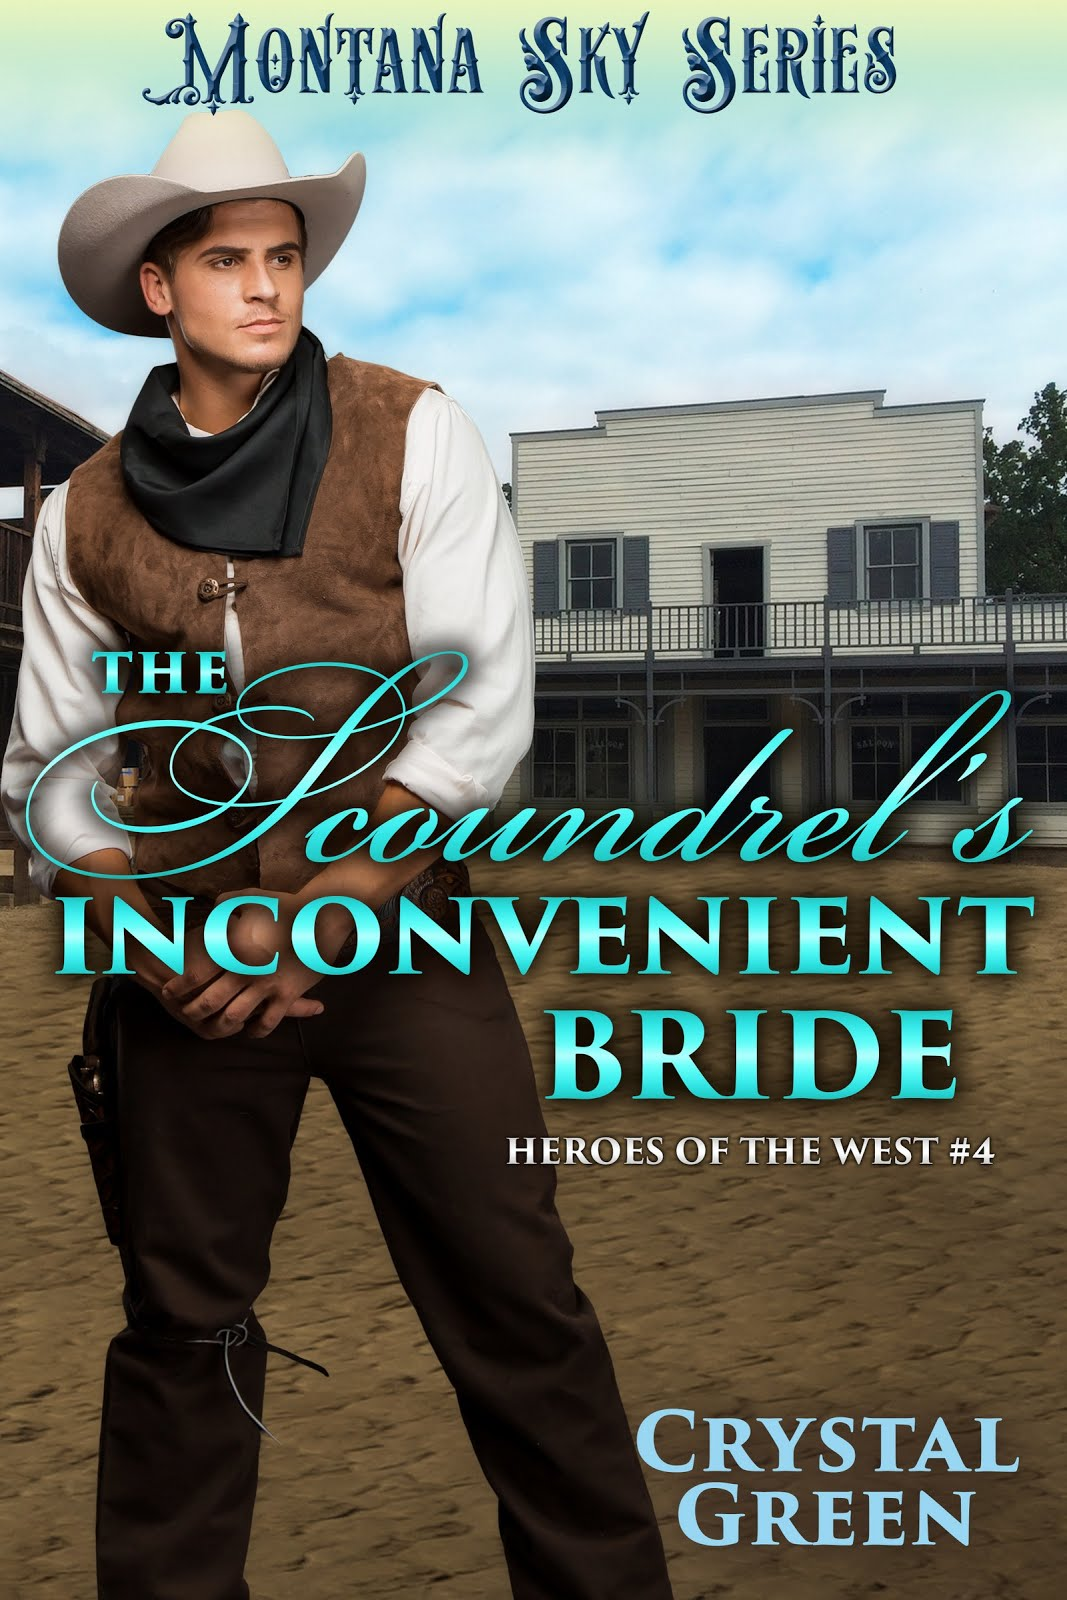 Montana Sky: The Scoundrel's Inconvenient Bride